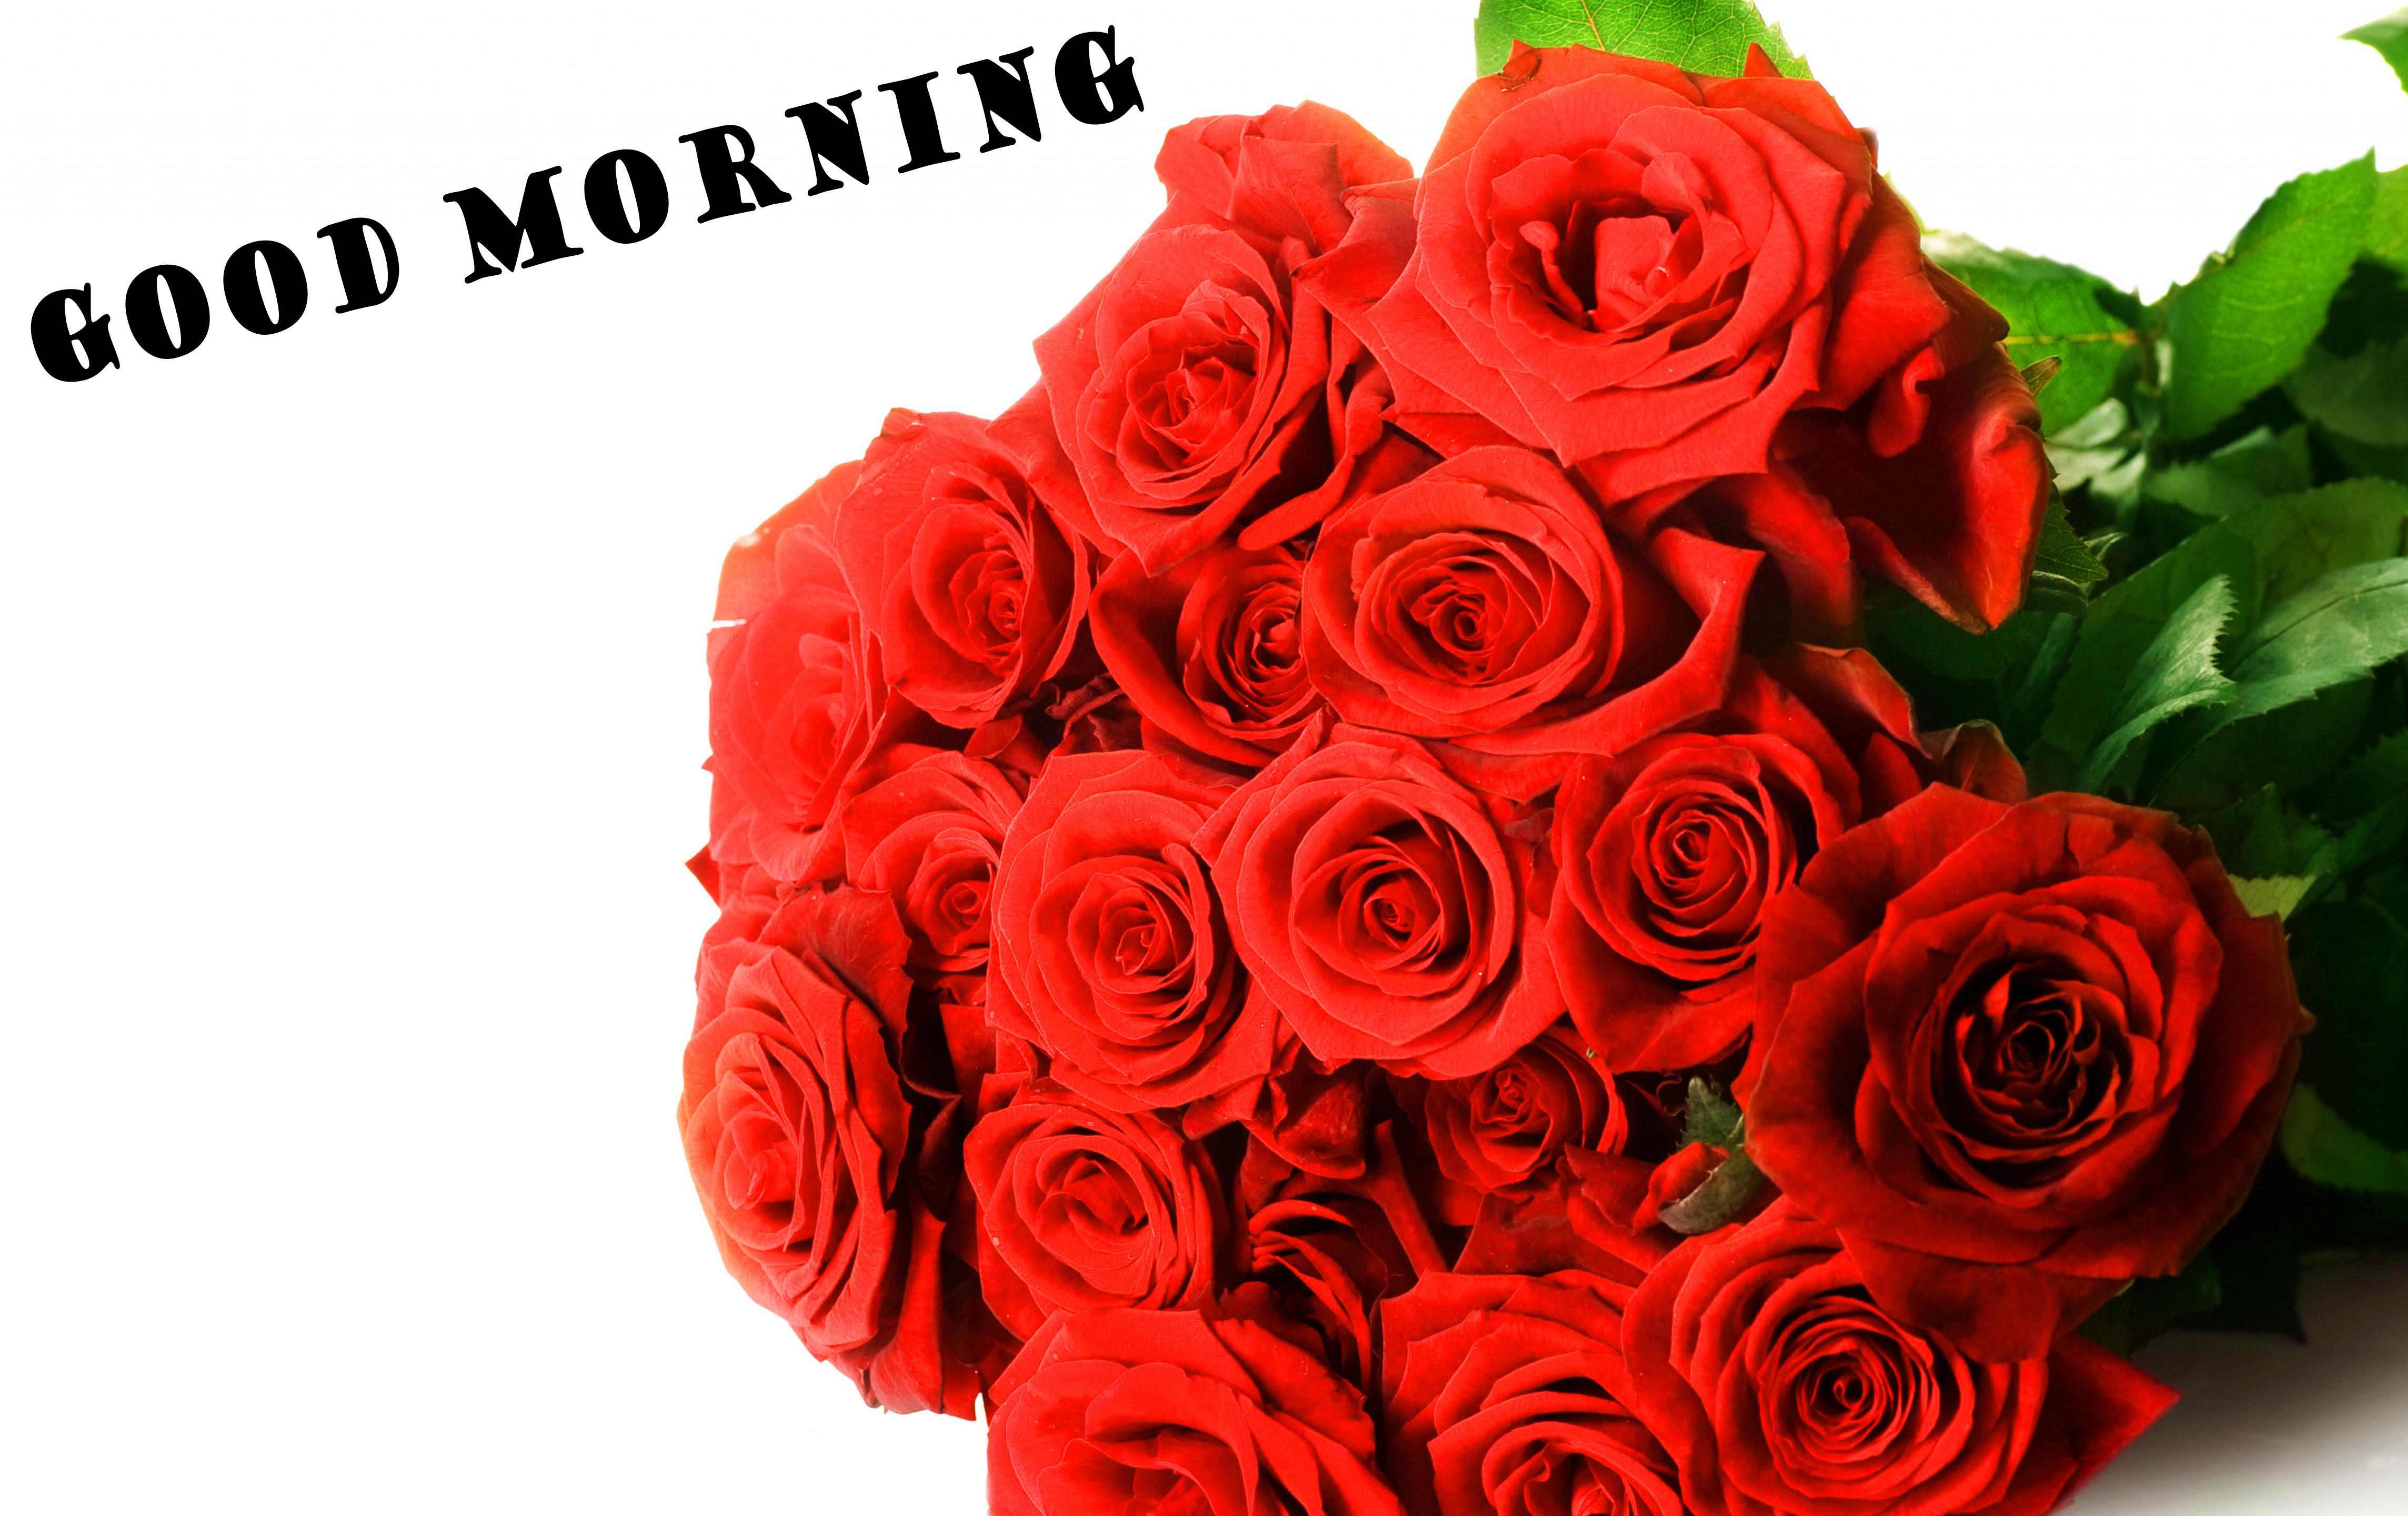 472 Good Morning Red Rose Images Wallpaper Pics For Girlfriend Wife